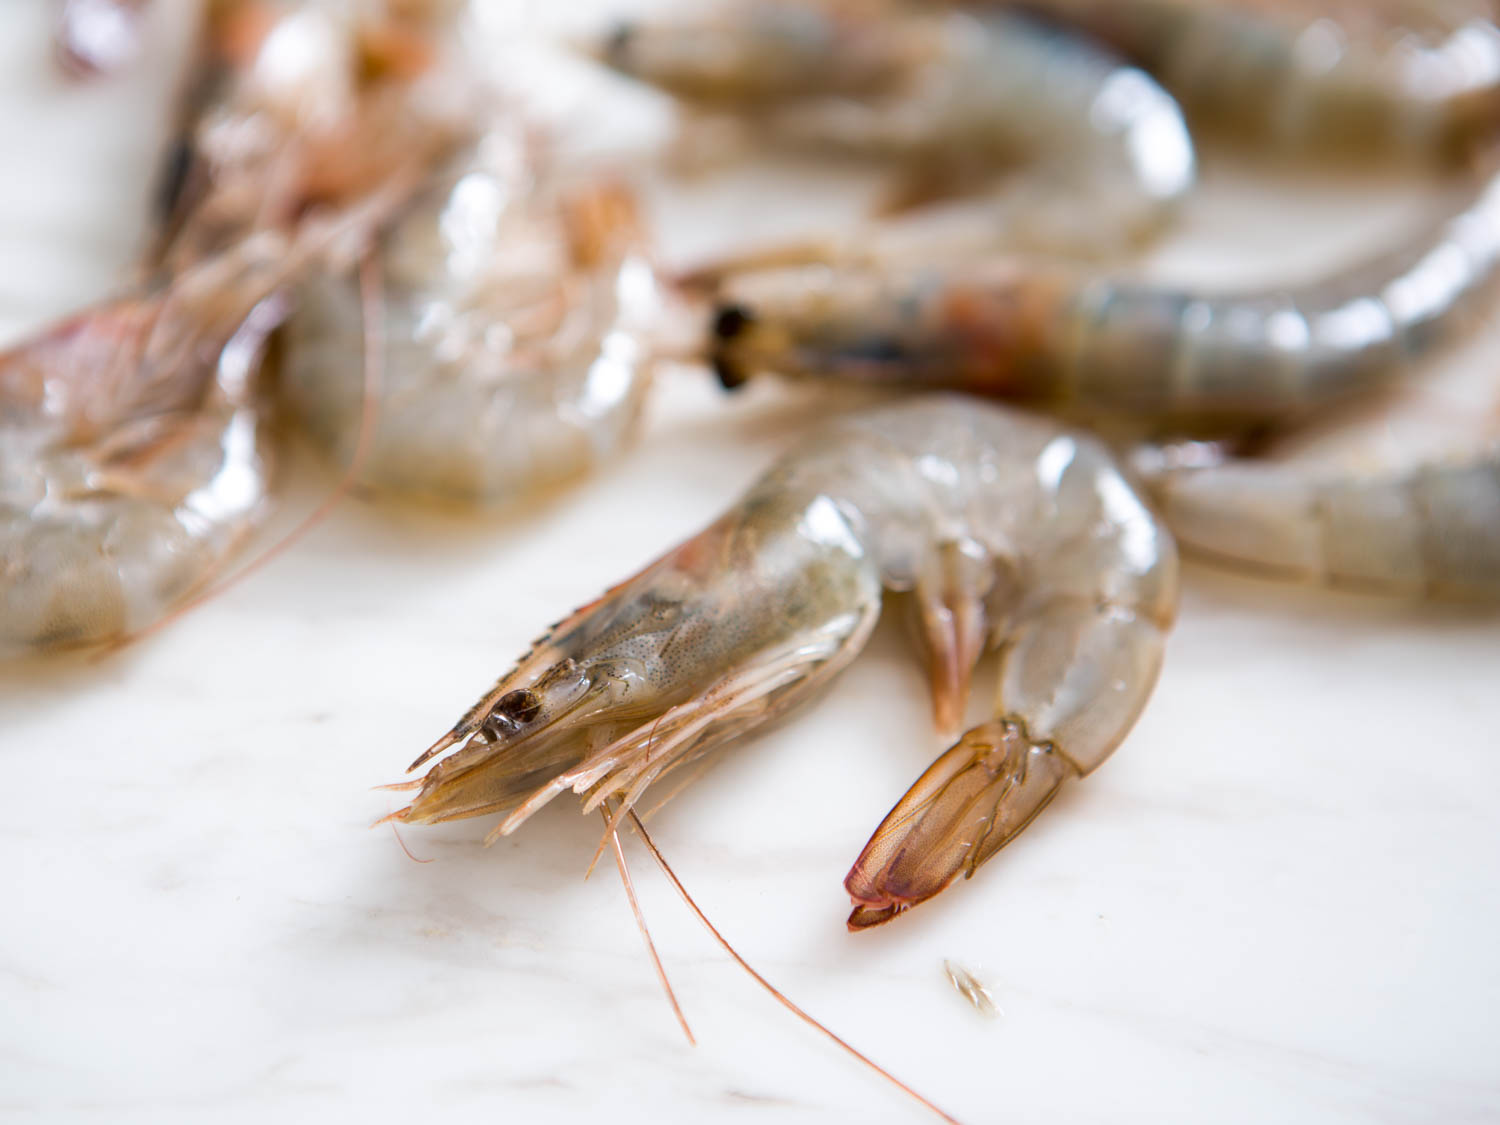 Live Shrimps